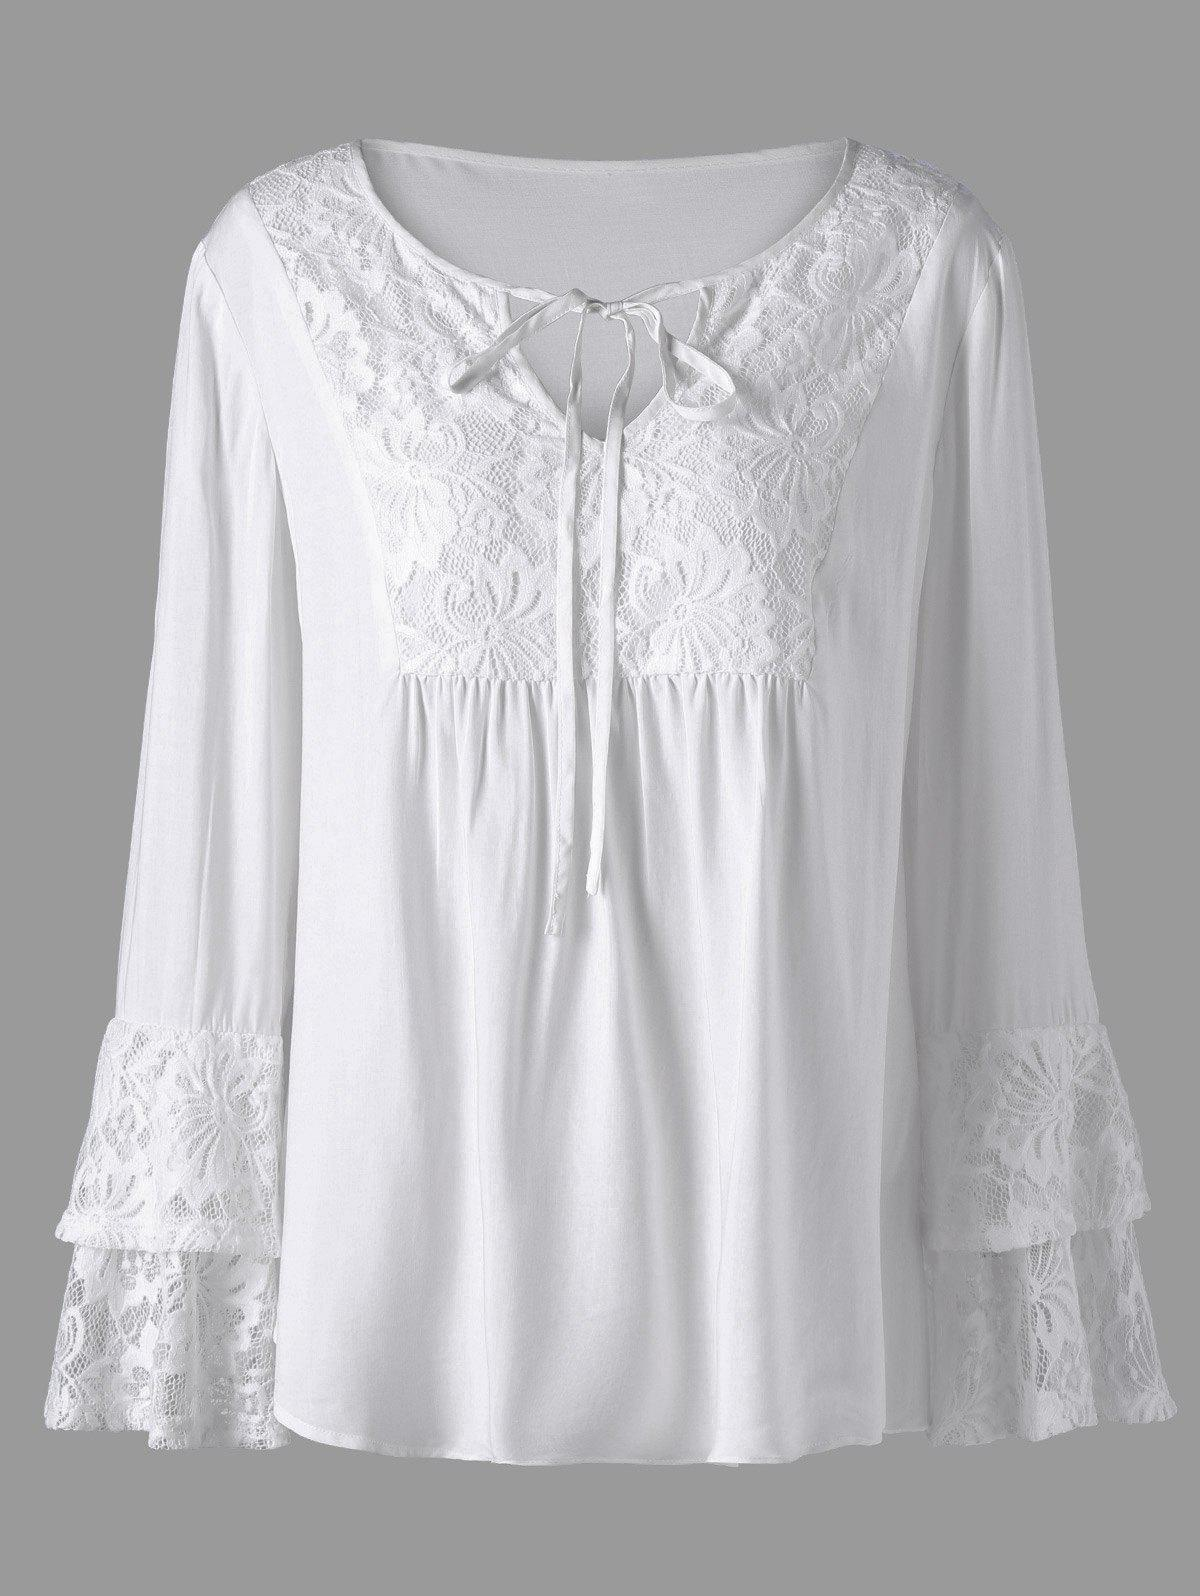 Plus Size Lace Trim Layered Sleeve Blouse вибратор screw driver 10 функций 16 5 см